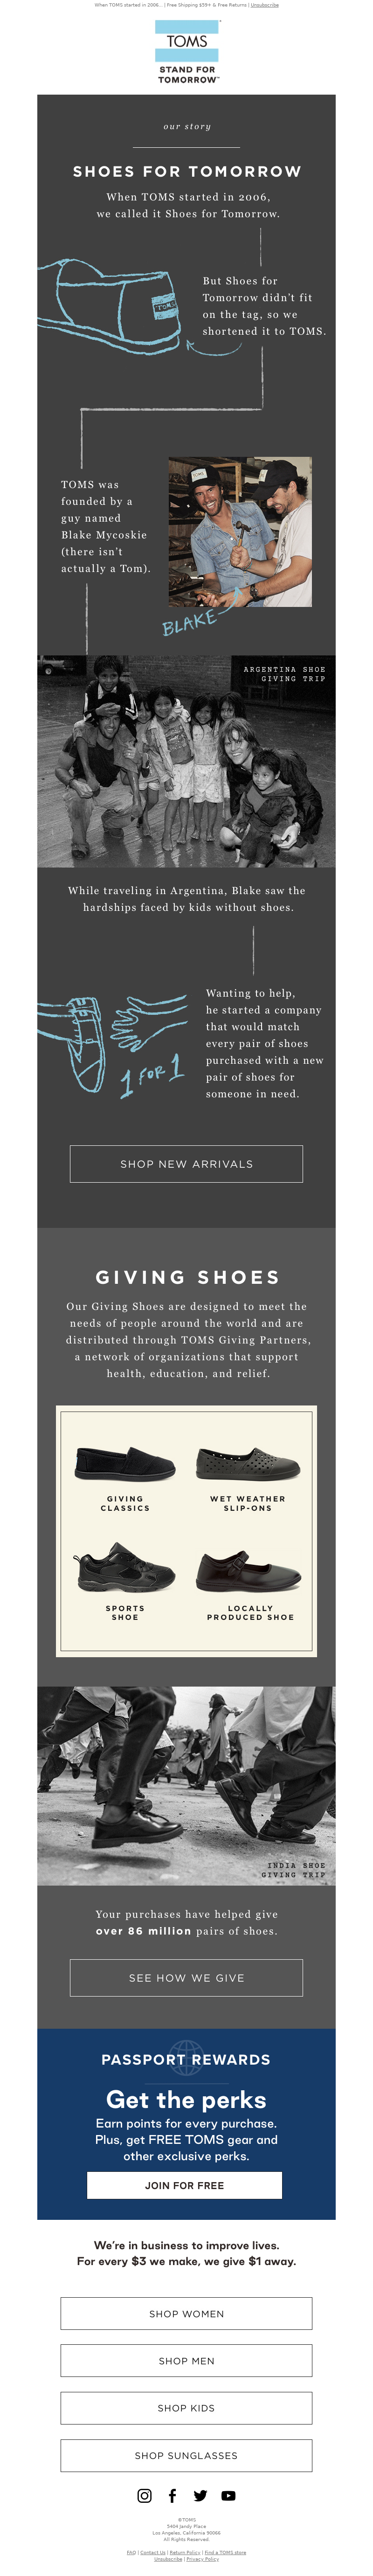 When TOMS started in 2006... | Free Shipping $59+ & Free Returns | Unsubscr